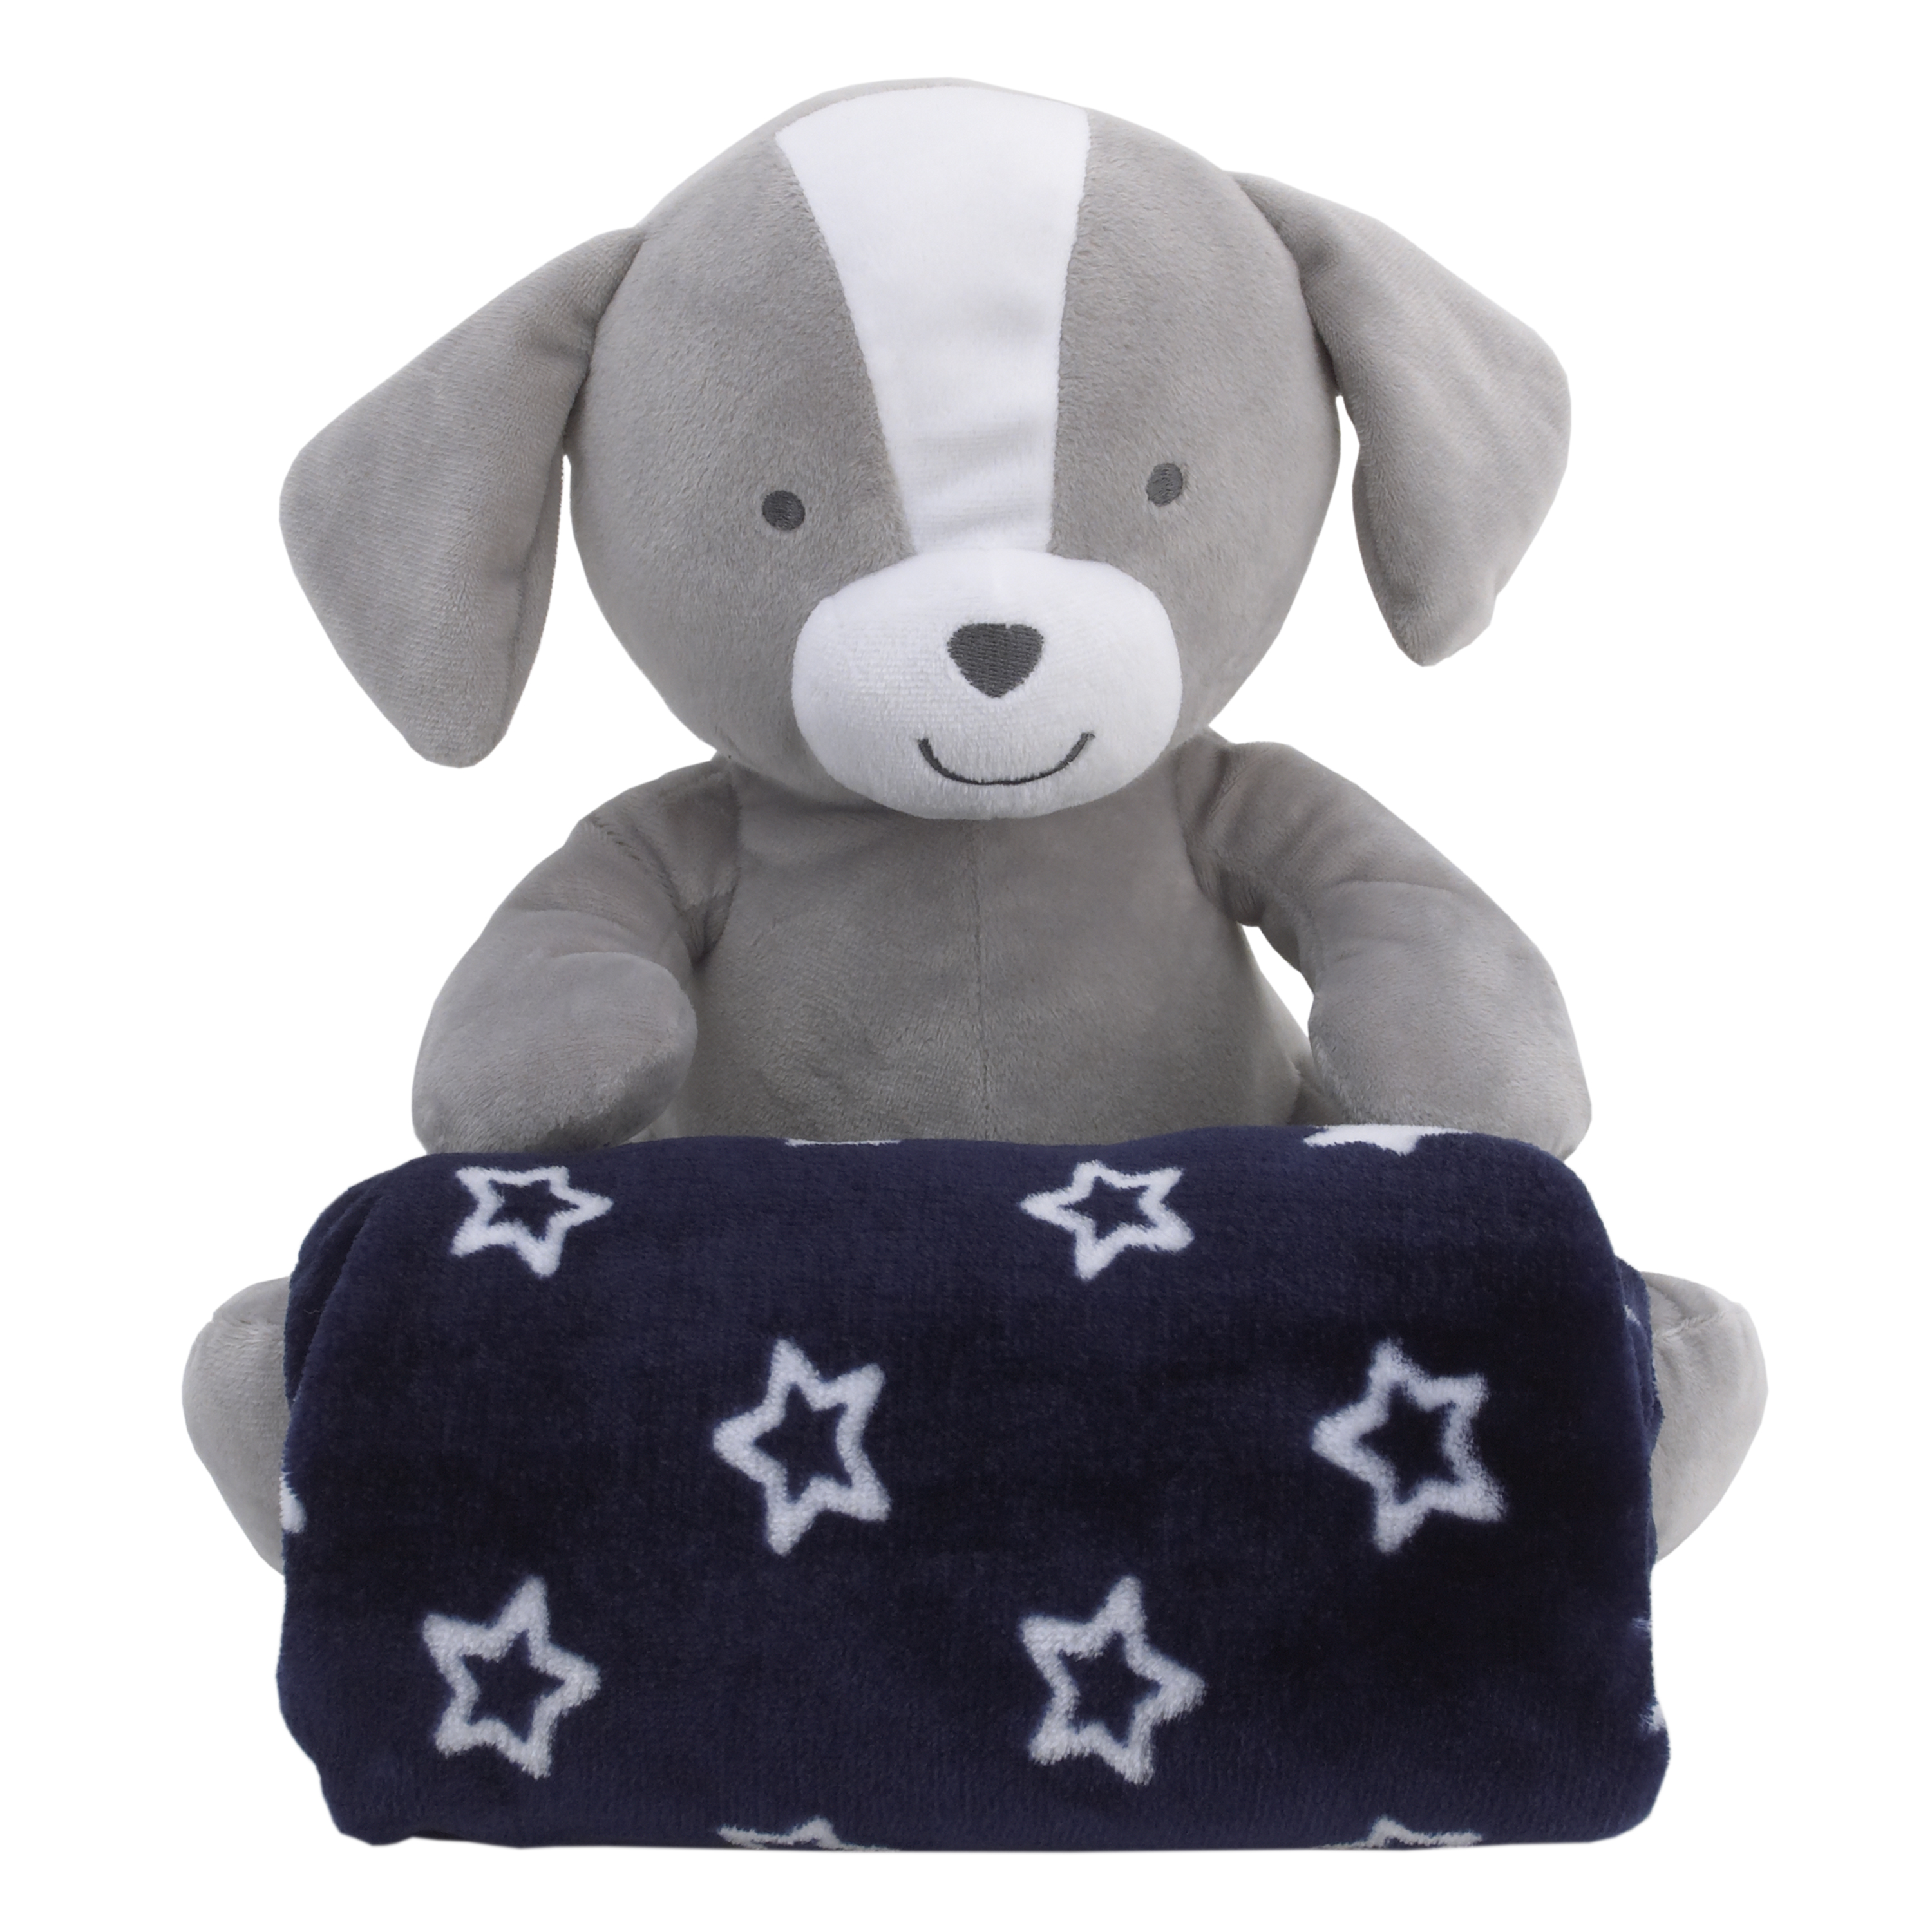 Child Of Mine Plush Dog and Blanket Set by Child of Mine by Carter%27s